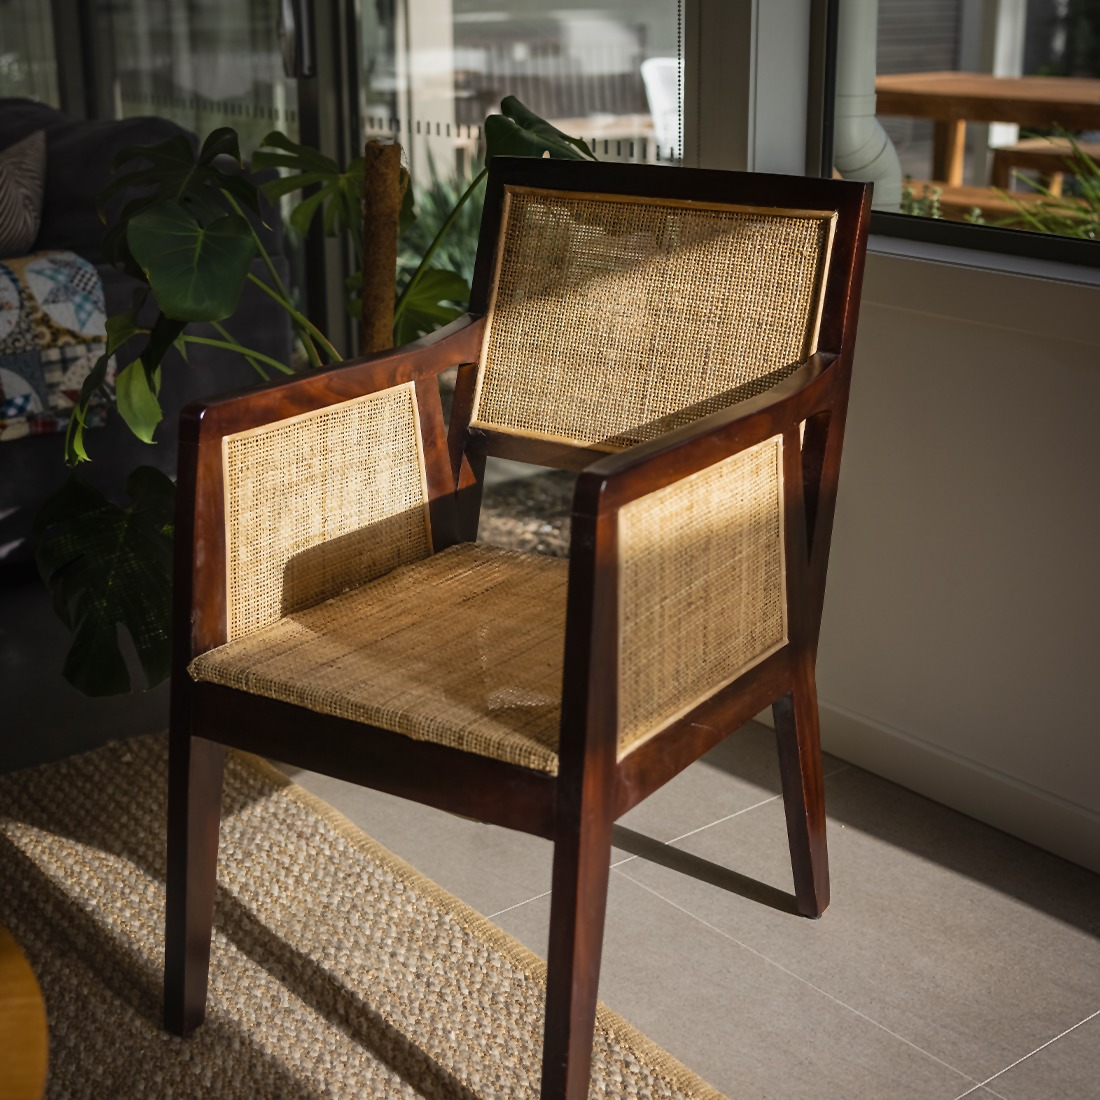 A chair displayed in the sun.